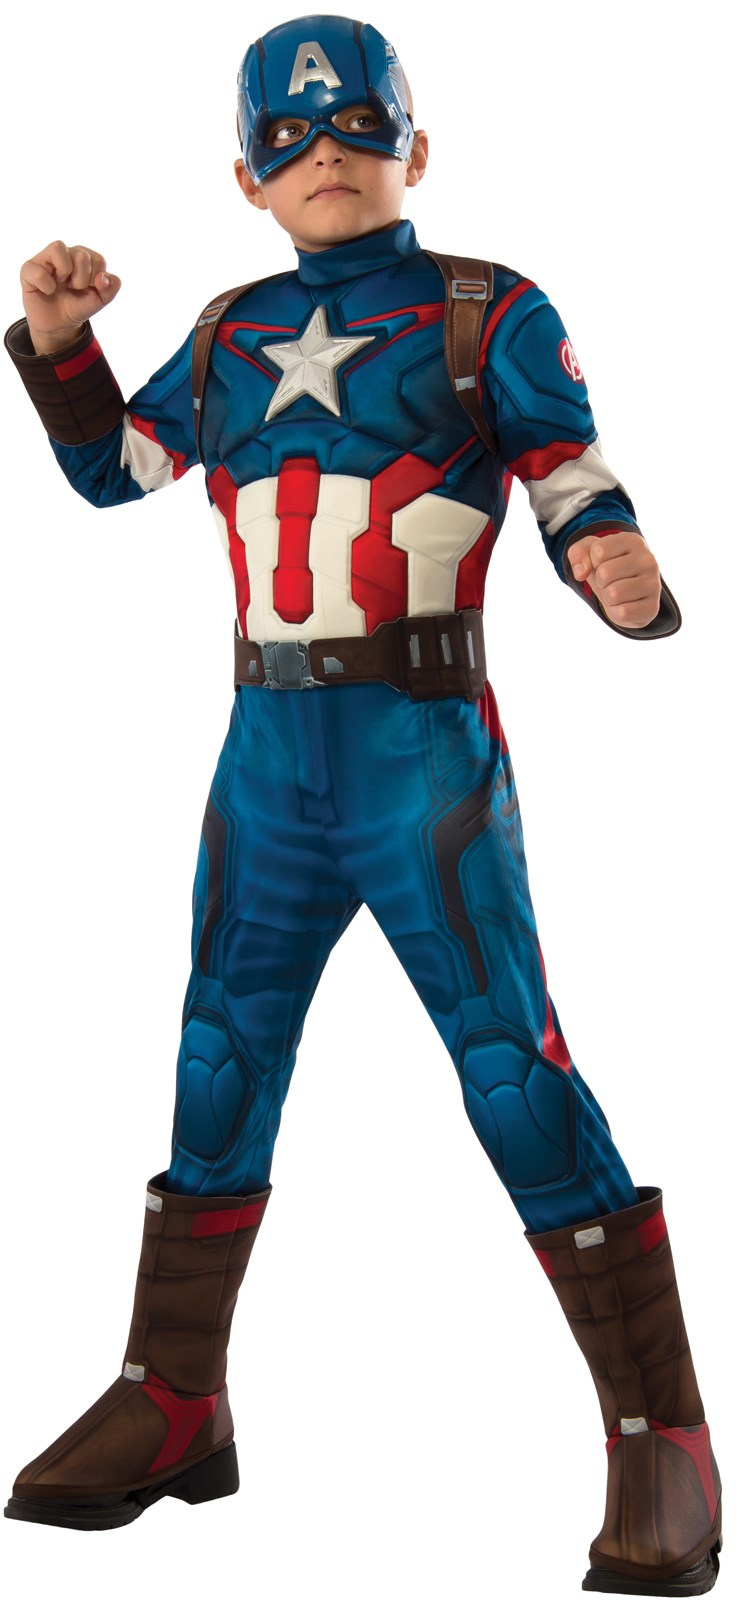 Avengers 2 - Age of Ultron: Deluxe Captain America Kids Costume Small (4-6)